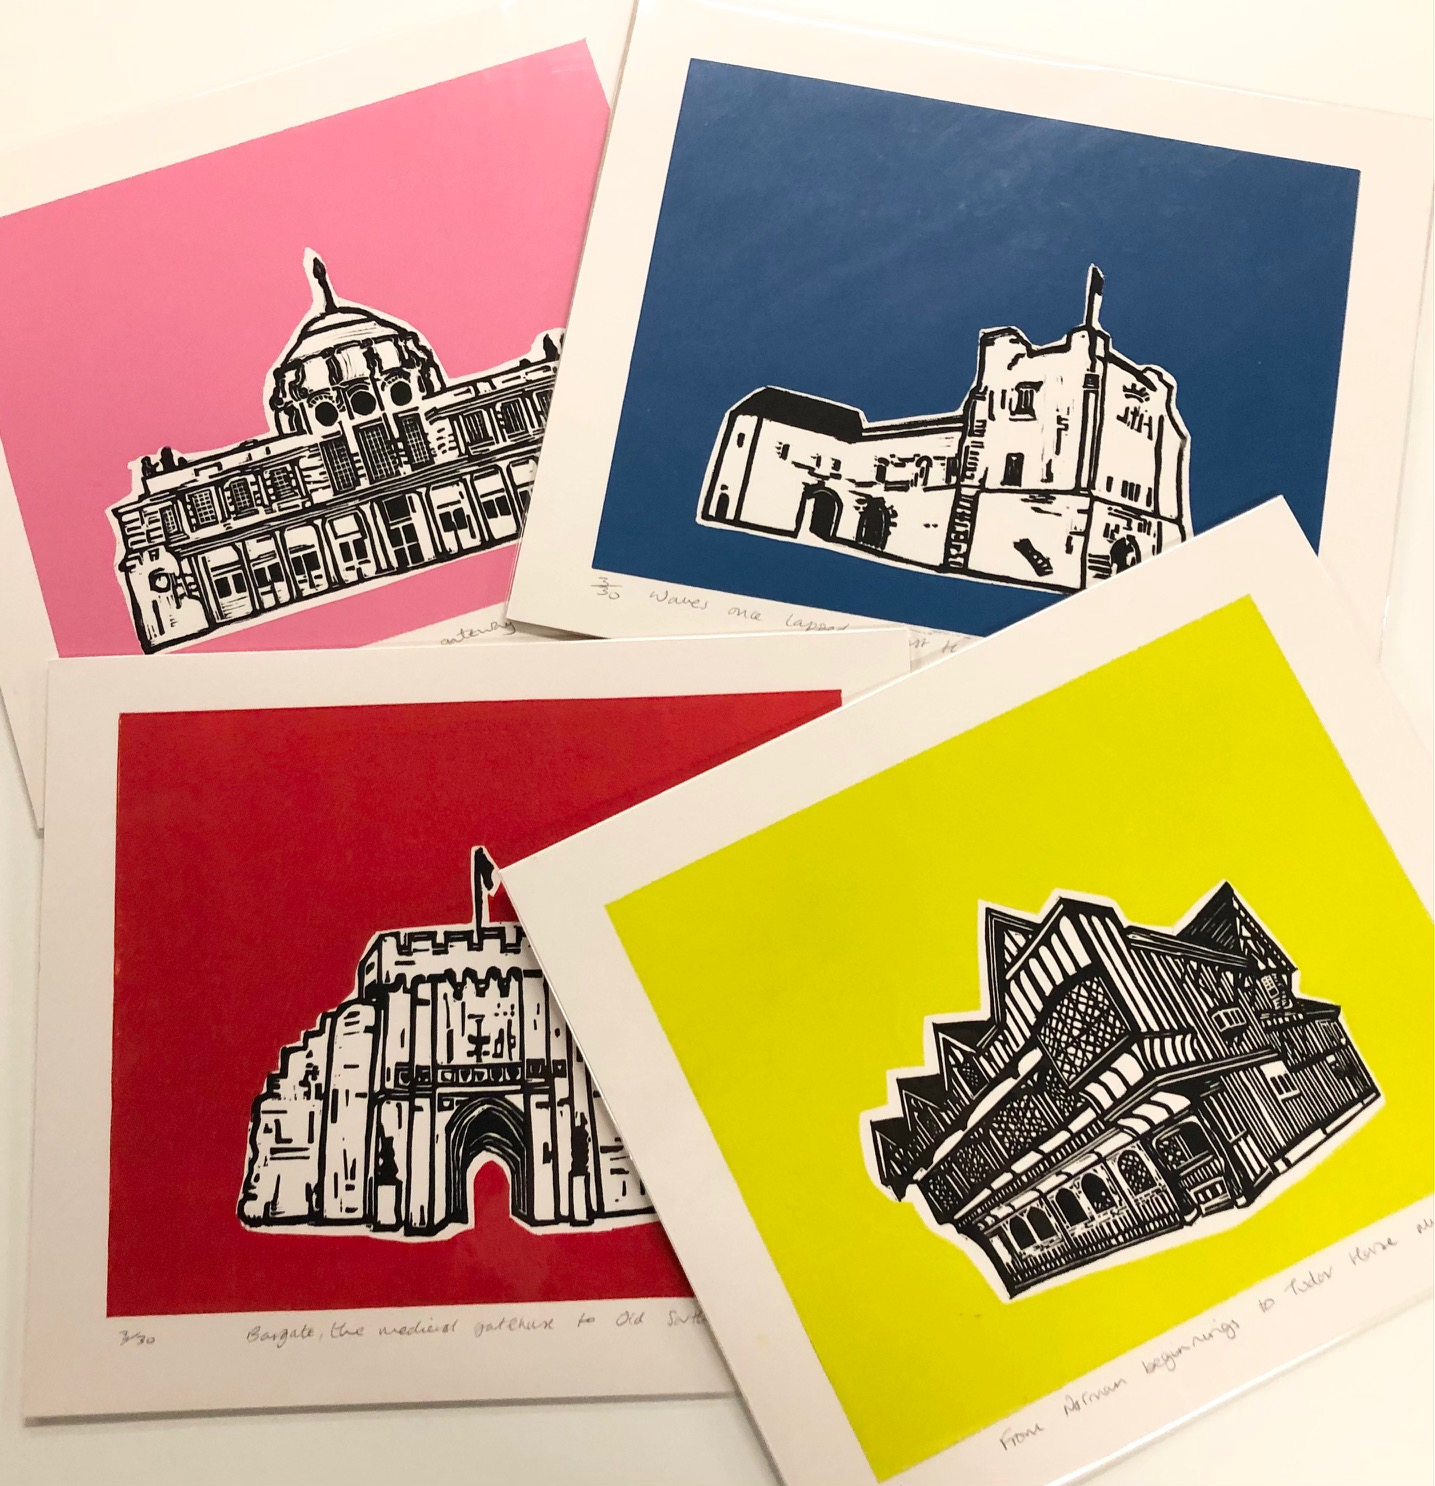 'Pop' Set of Prints by Mandy Smith